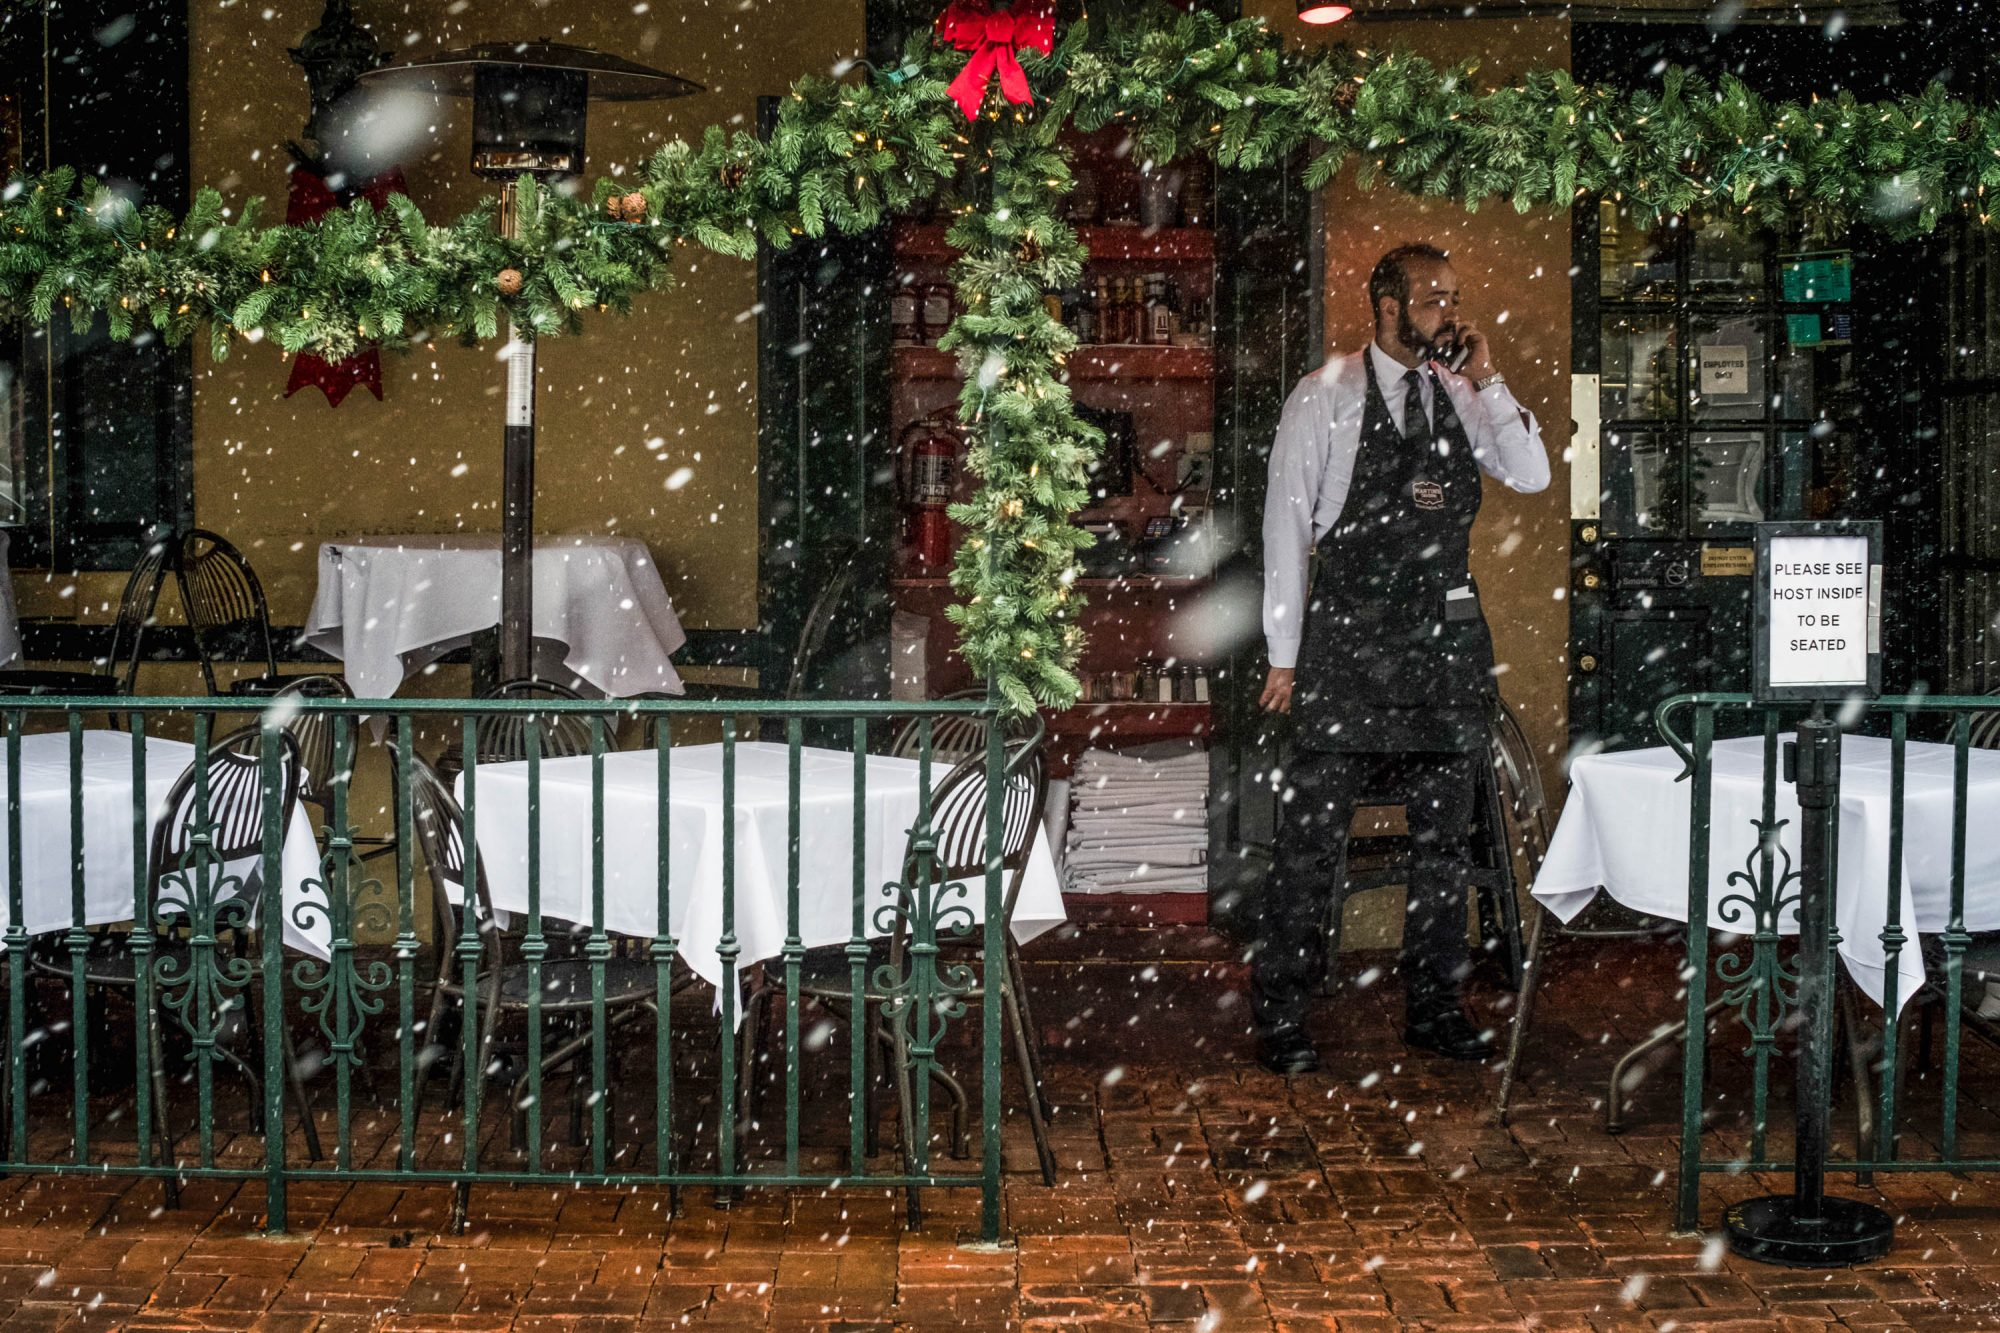 Waiter stands outside of restaurant as it snows